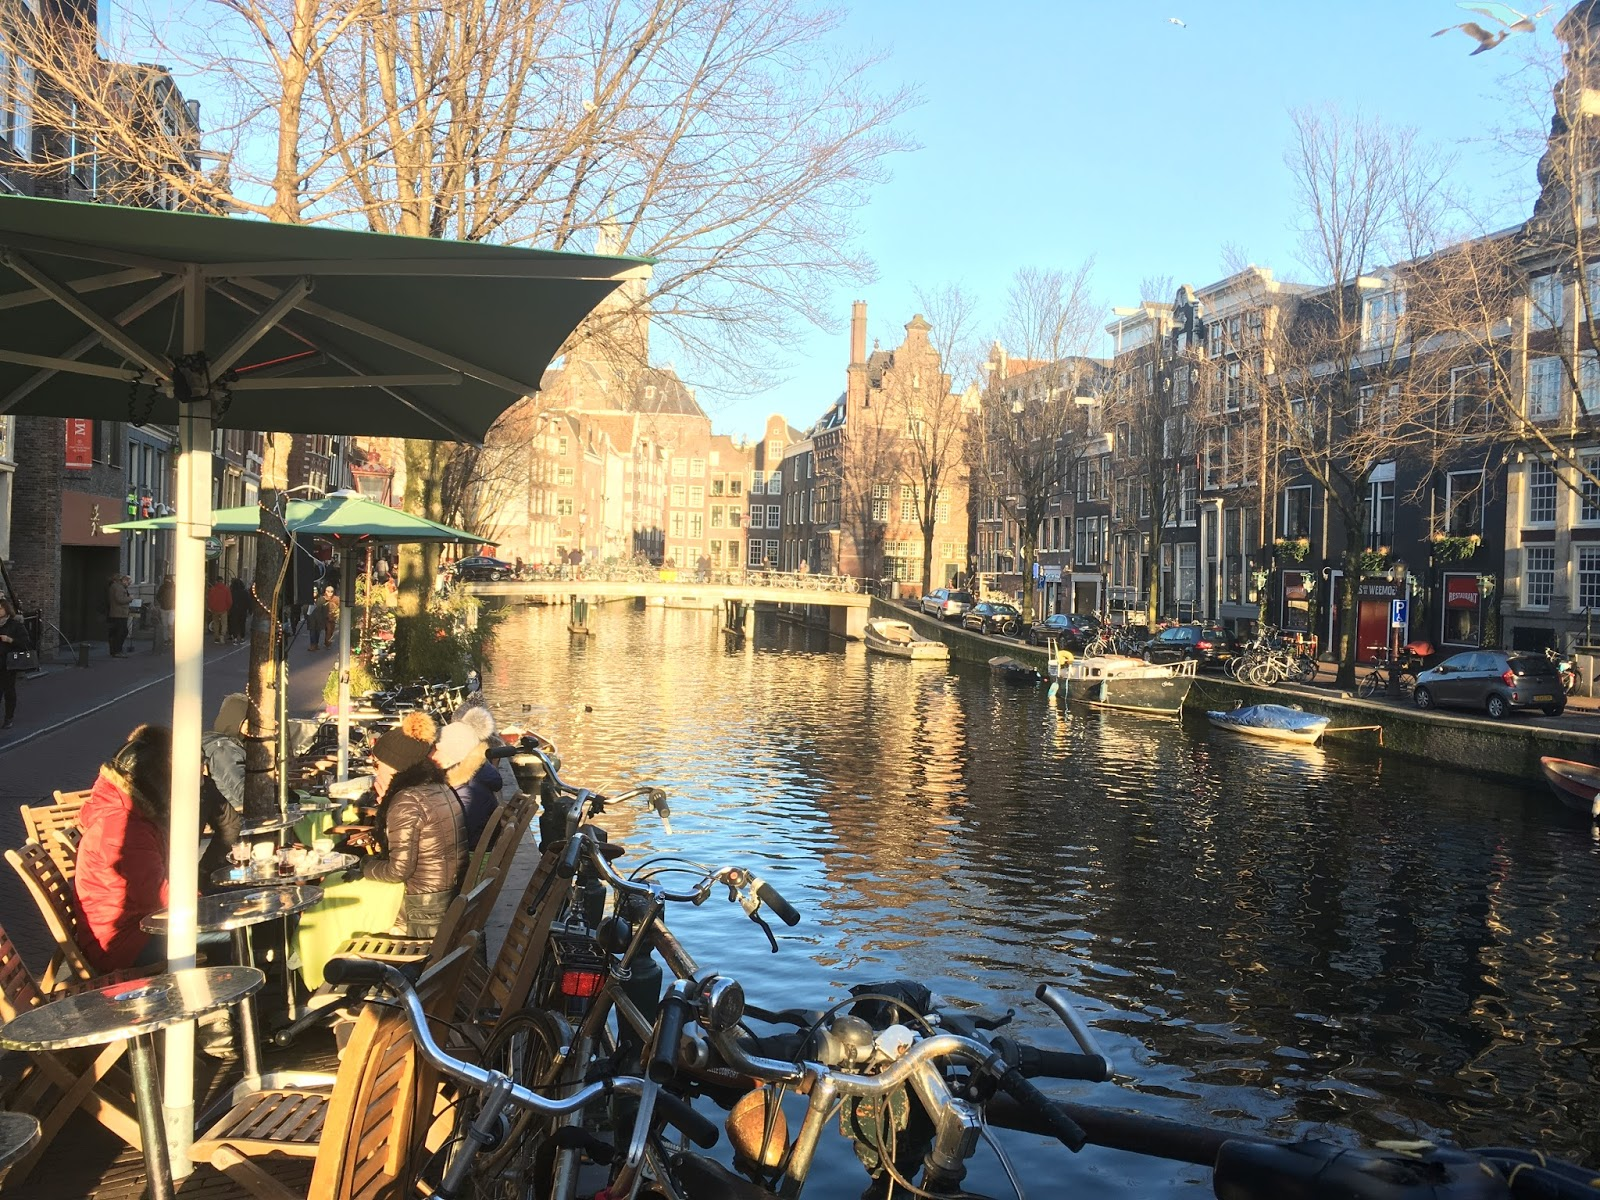 An image of an Amsterdam canal during the day